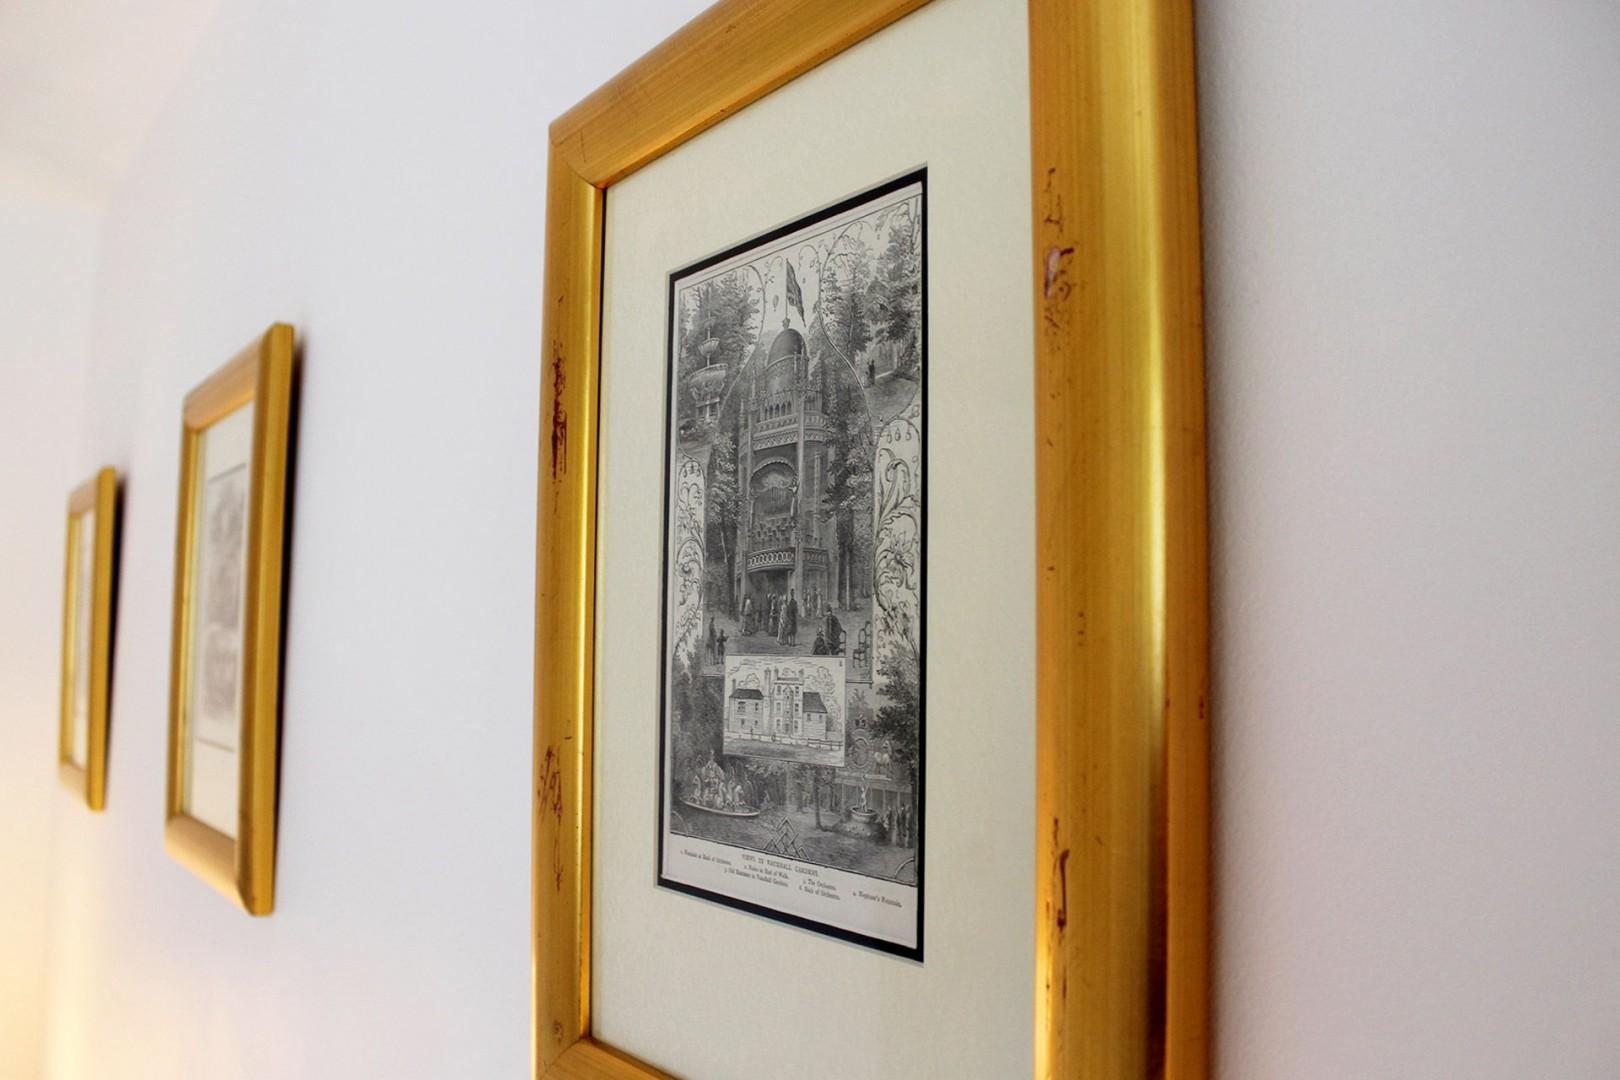 Lovely framed pictures in the first bedroom